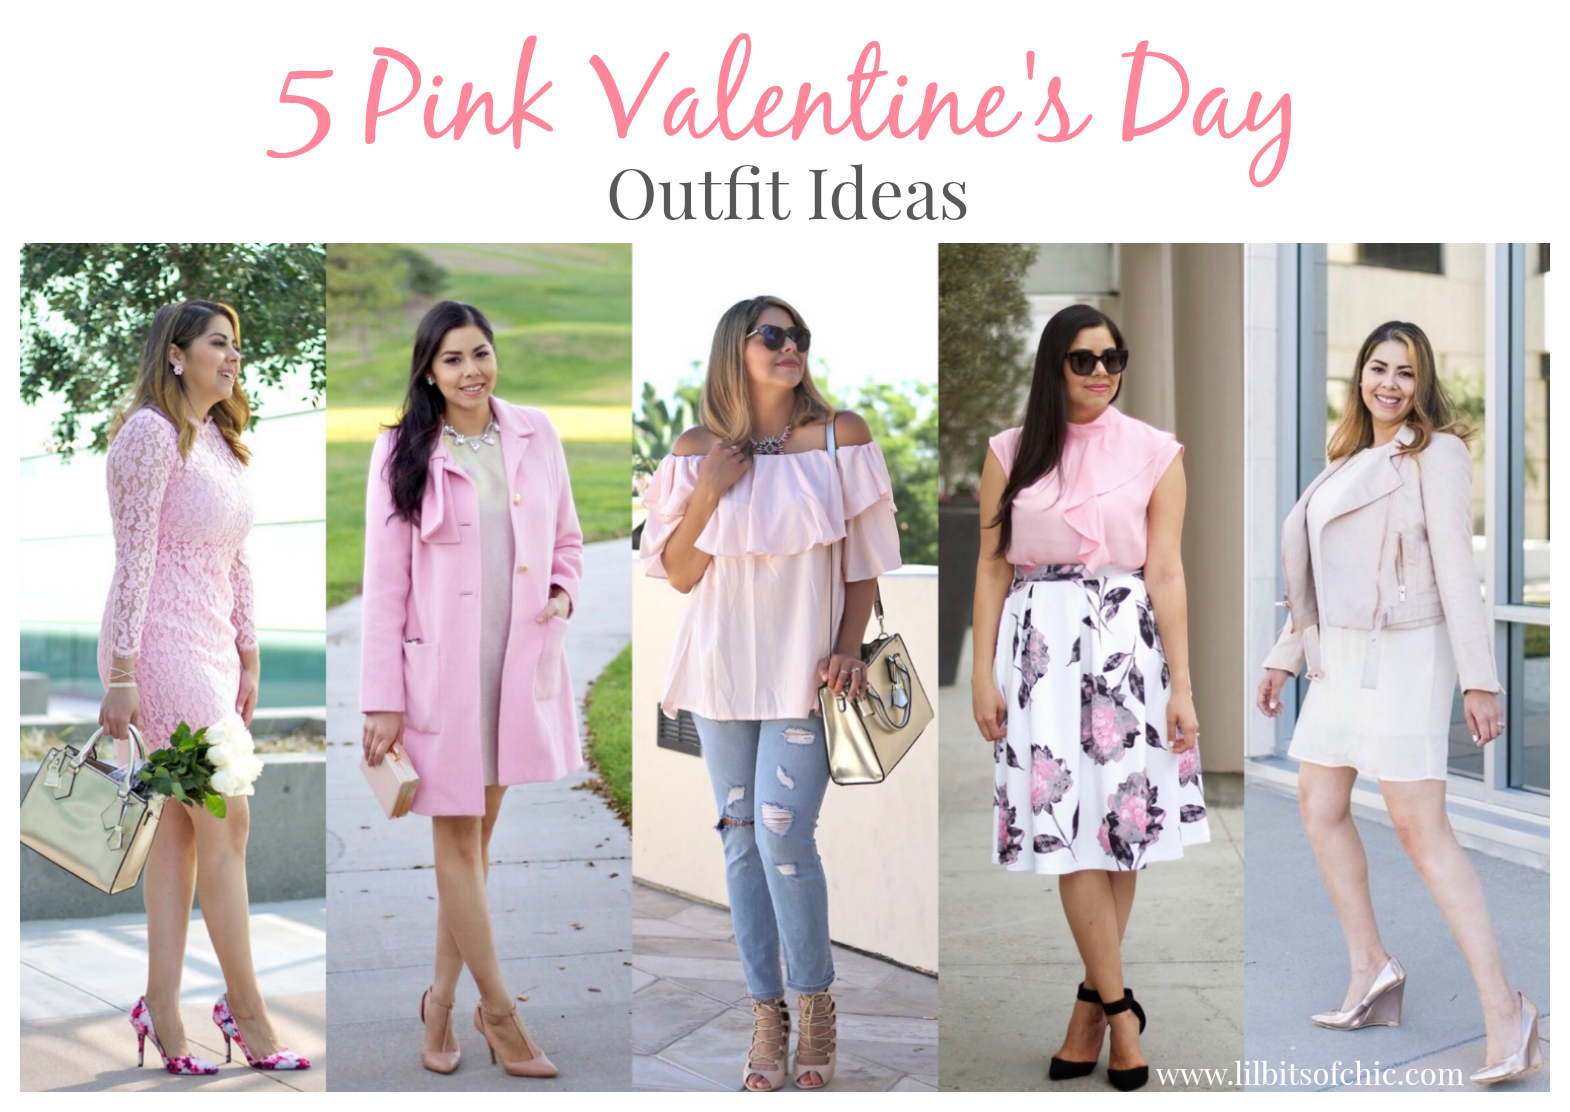 5 pink vday look ideas, valentine's day lookbook, vday looks